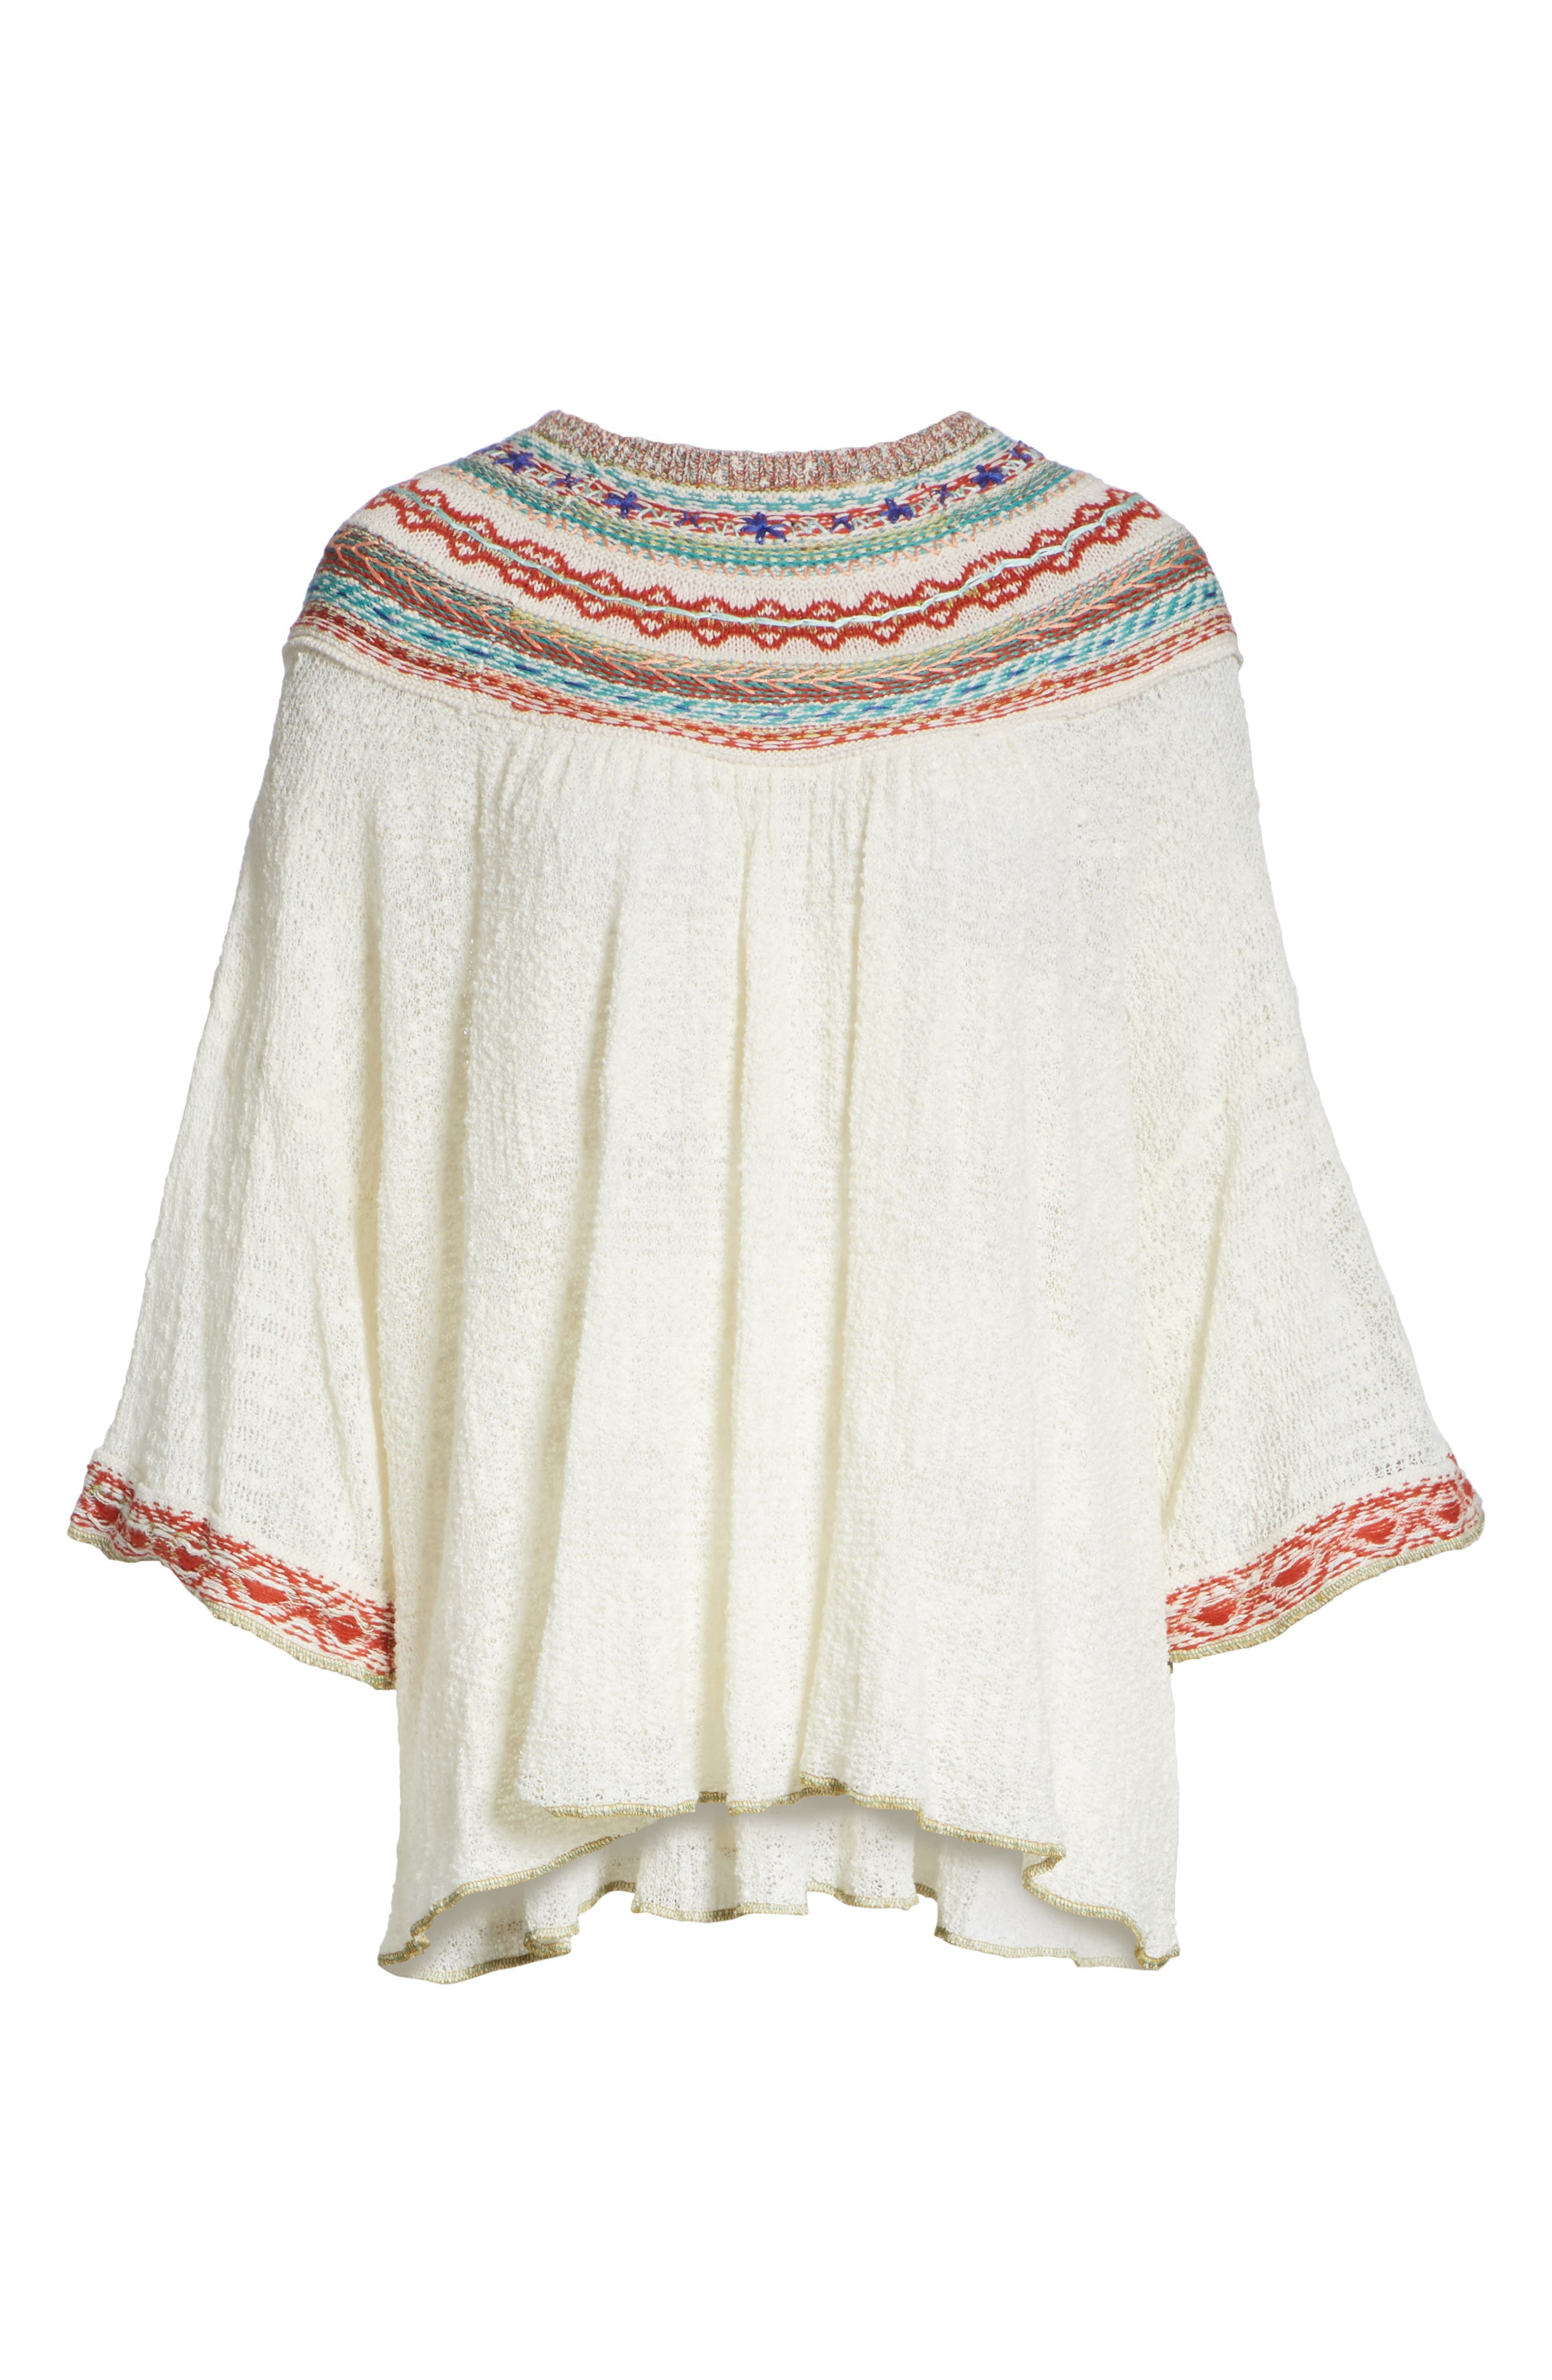 Vacation Sweater,                             Alternate thumbnail 6, color,                             Ivory